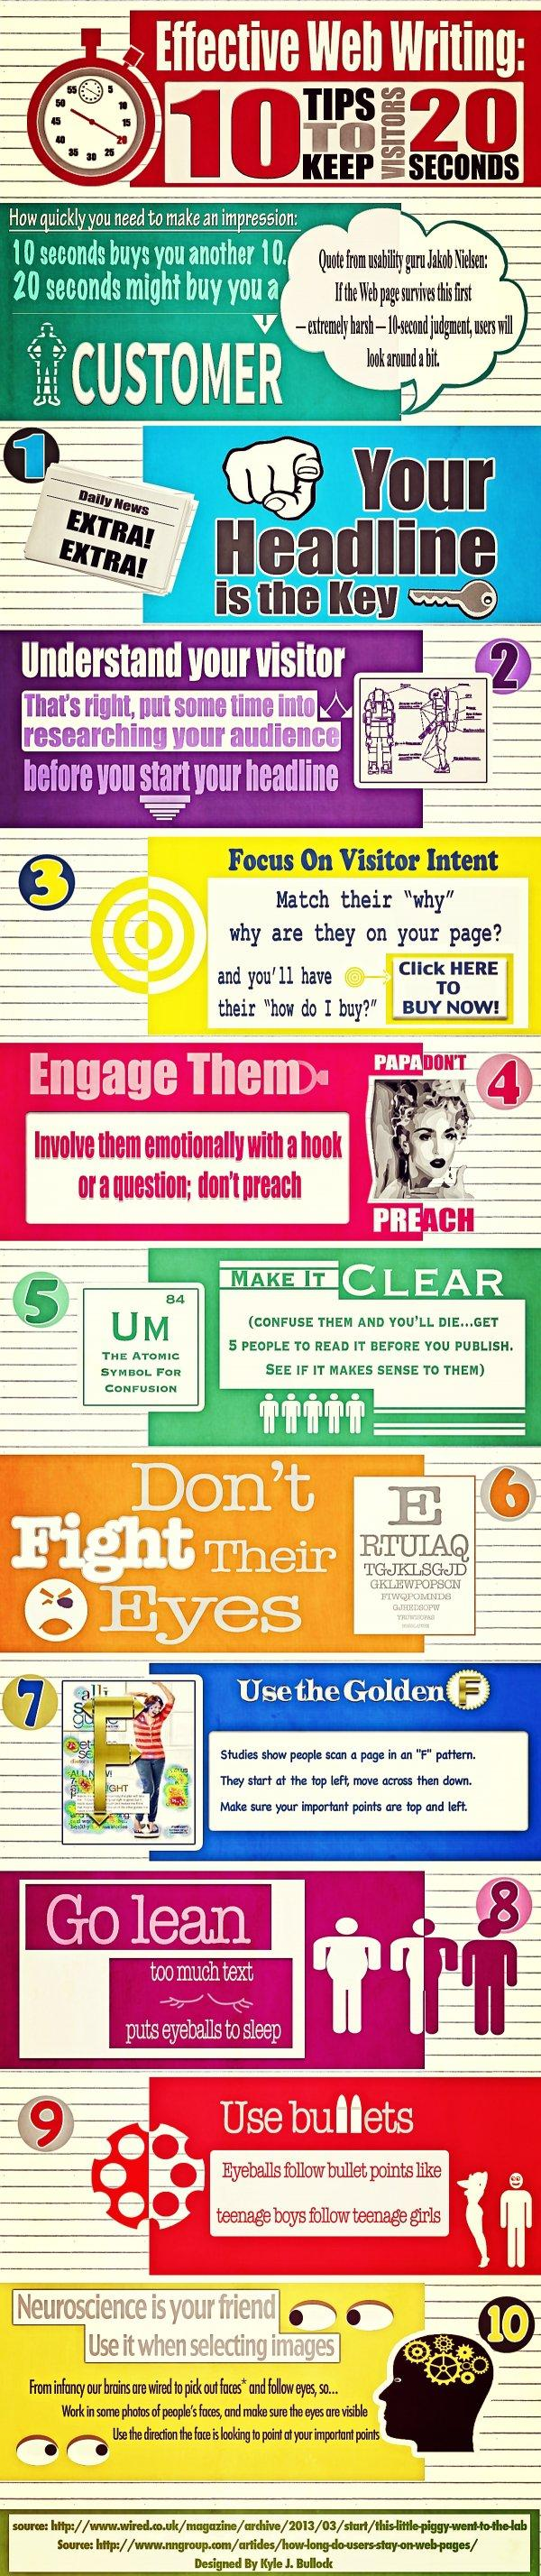 Effective Web Writing Infographic